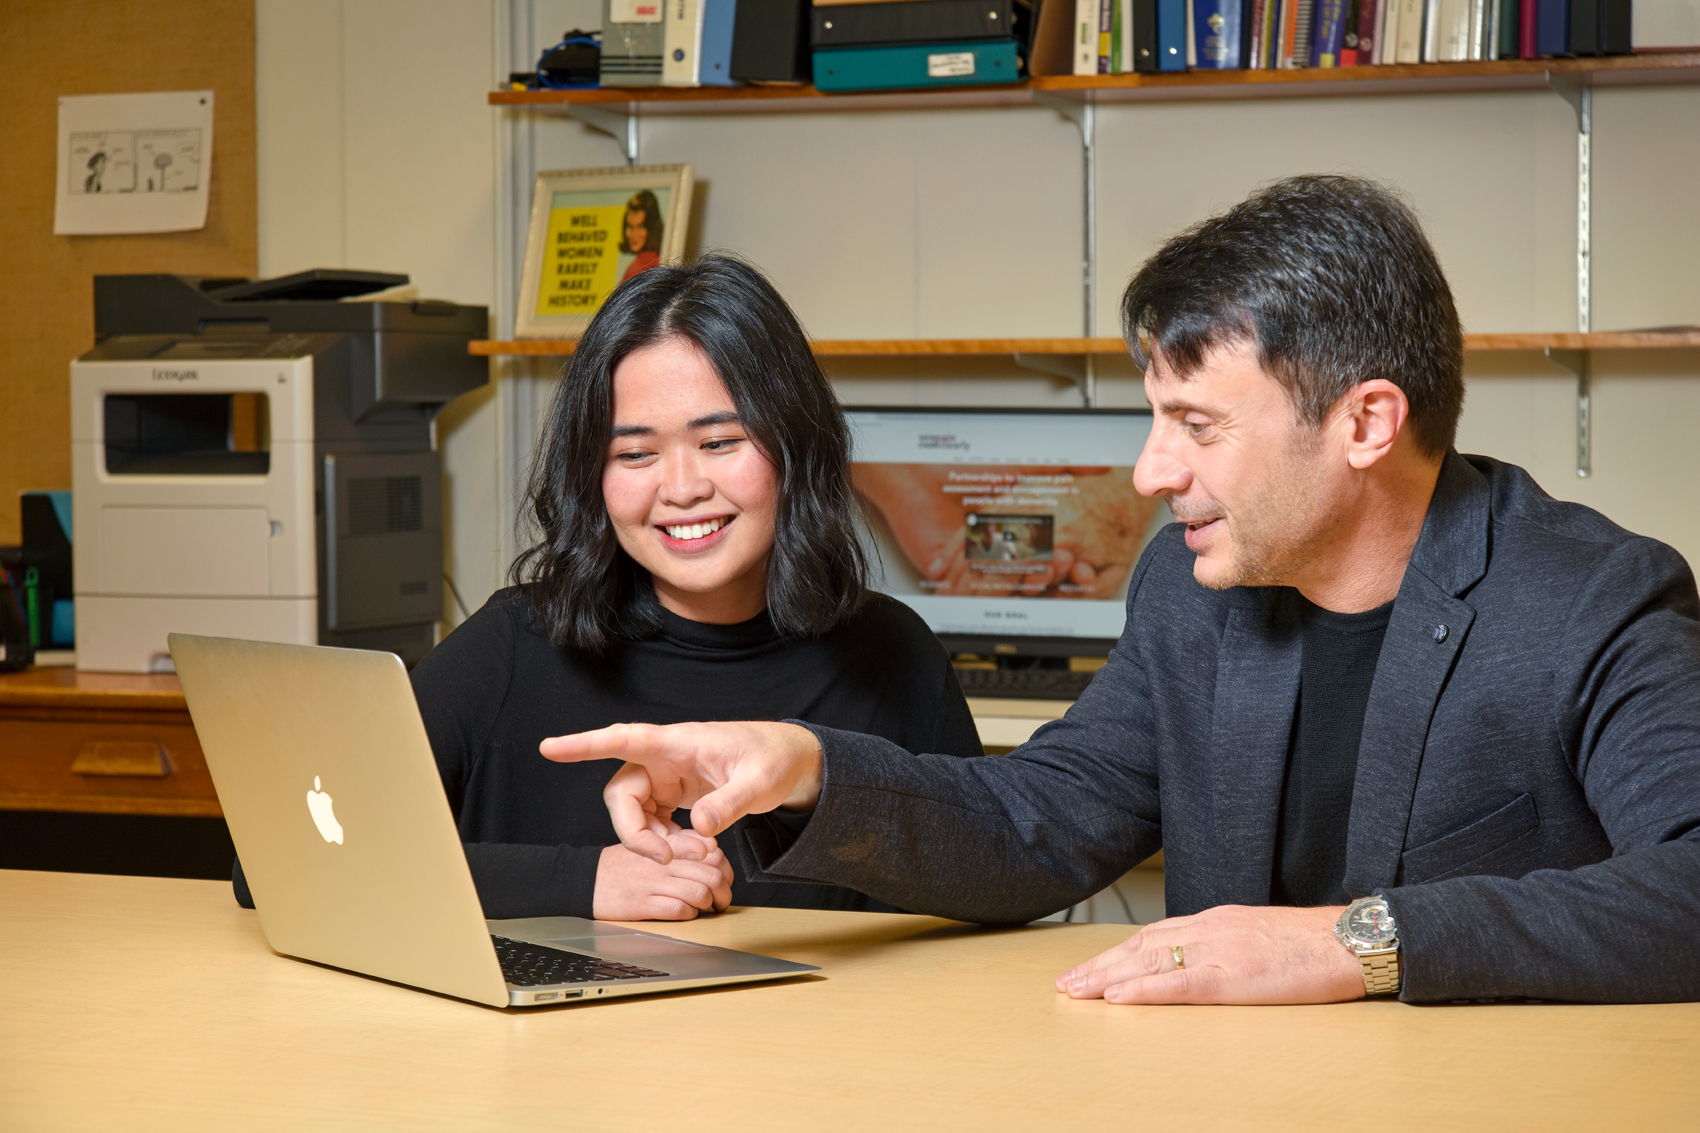 Thomas Hadjistavropoulos and psycholgoy student Louise Castillo working on the #SeePainMoreClearly campaign. (Photo by Trevor Hopkin)